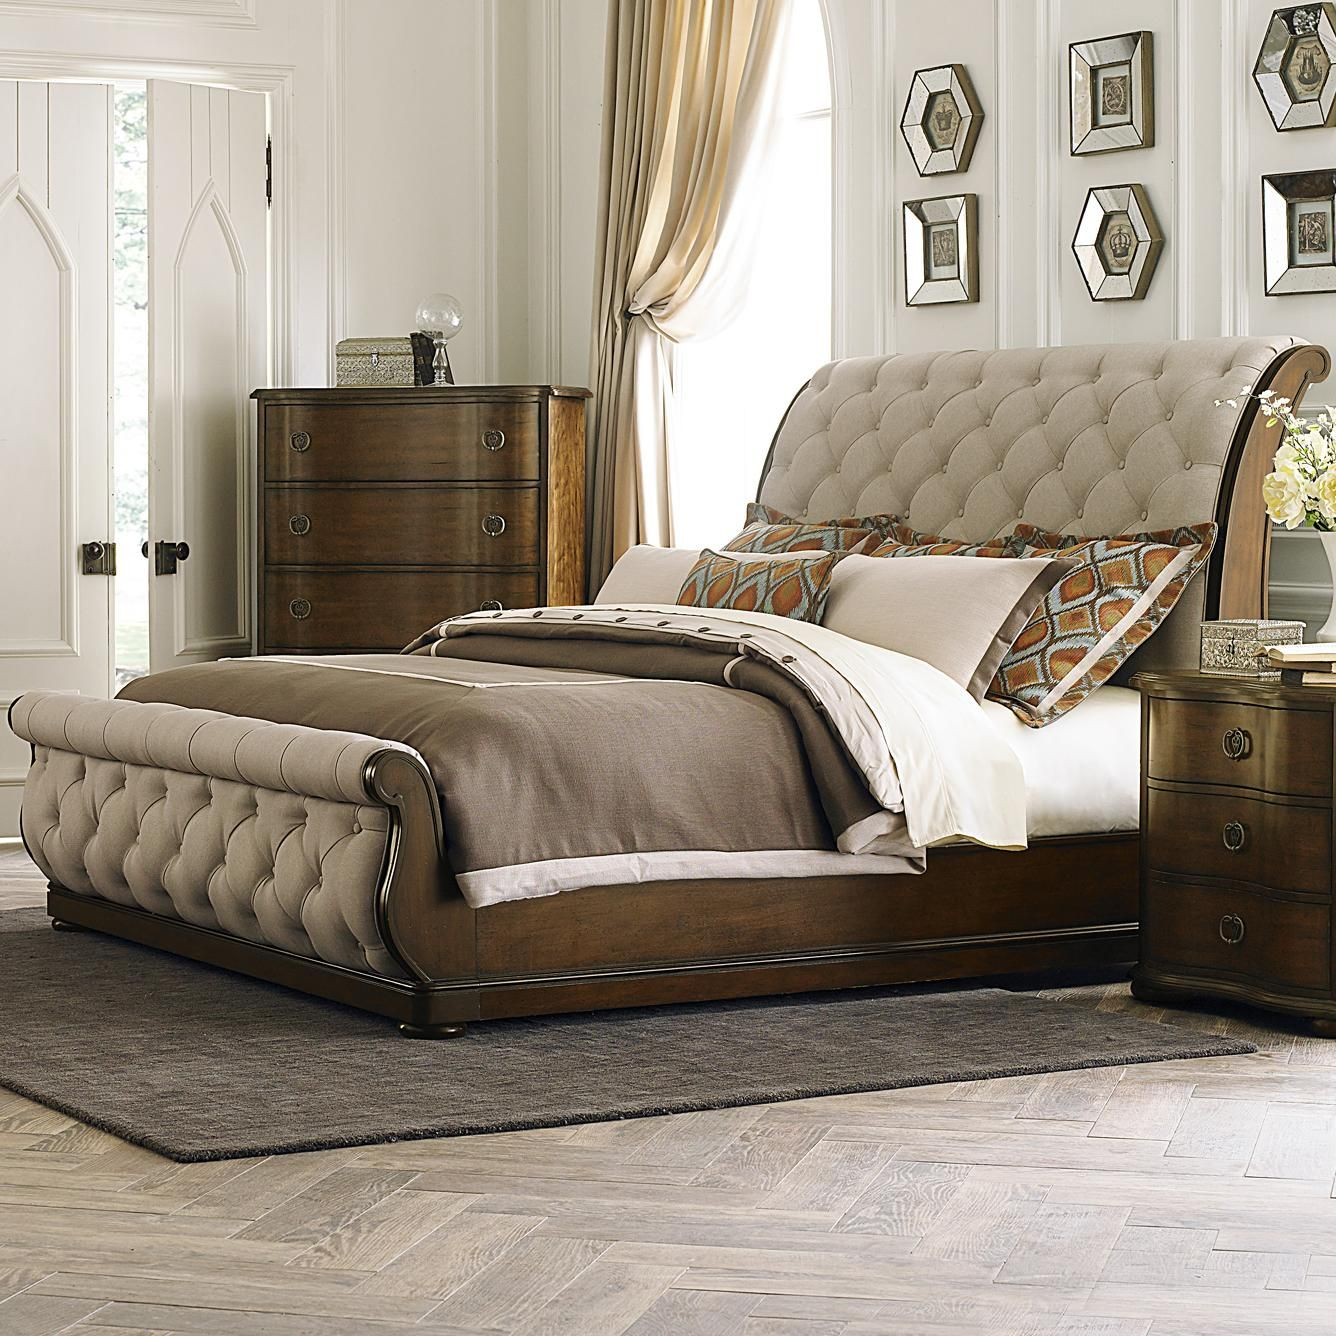 Cotswold Transitional Upholstered King Sleigh Bed By Liberty Furniture At Royal Furniture In 2020 Sleigh Bedroom Set Liberty Furniture Bedroom Furniture Sets